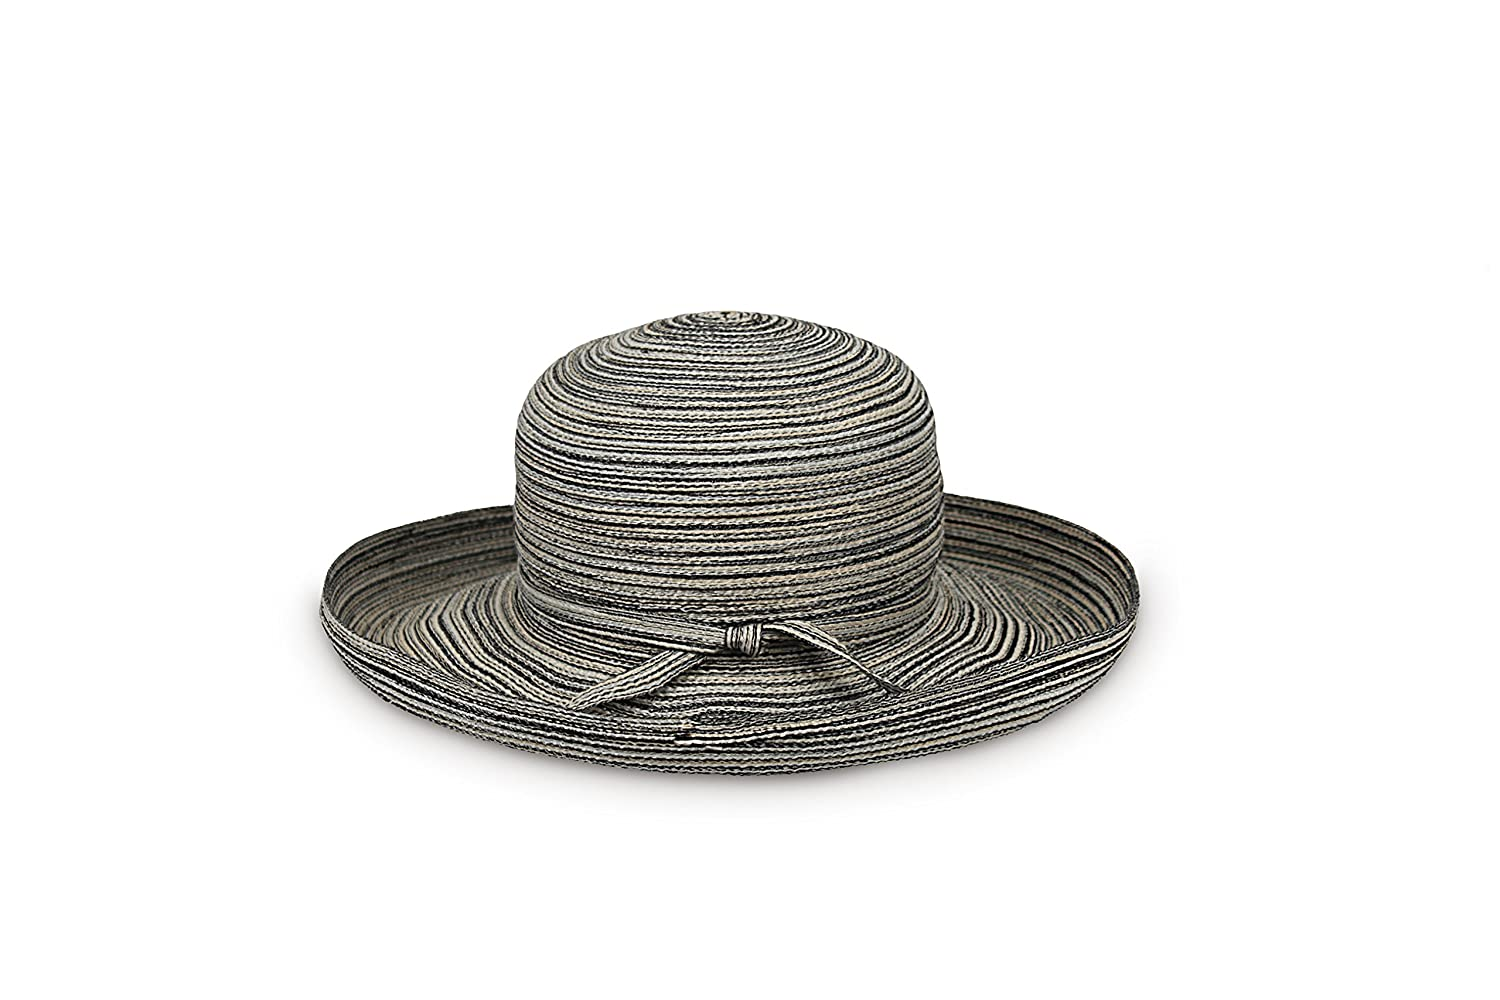 7e6ddb54 Amazon.com: Sunday Afternoons Women's Verona Hat, Ocean, One Size: Clothing